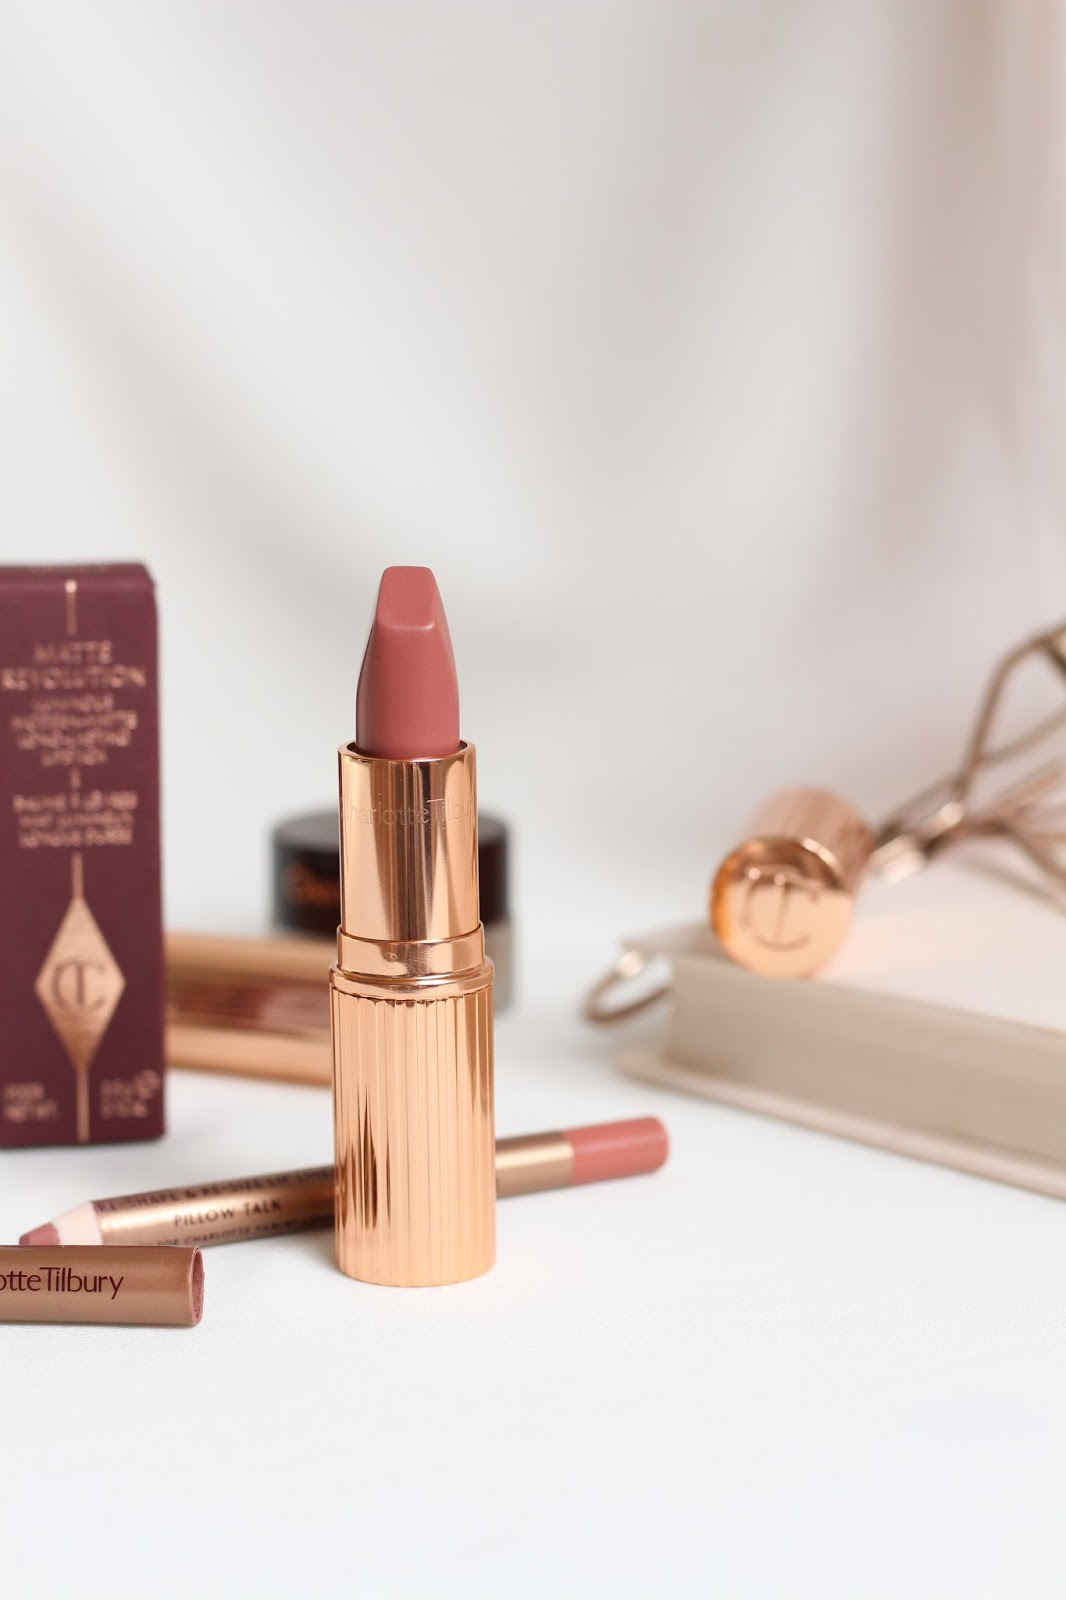 charlotte tilbury pillowtalk lipstick and lip liner with white backdrop